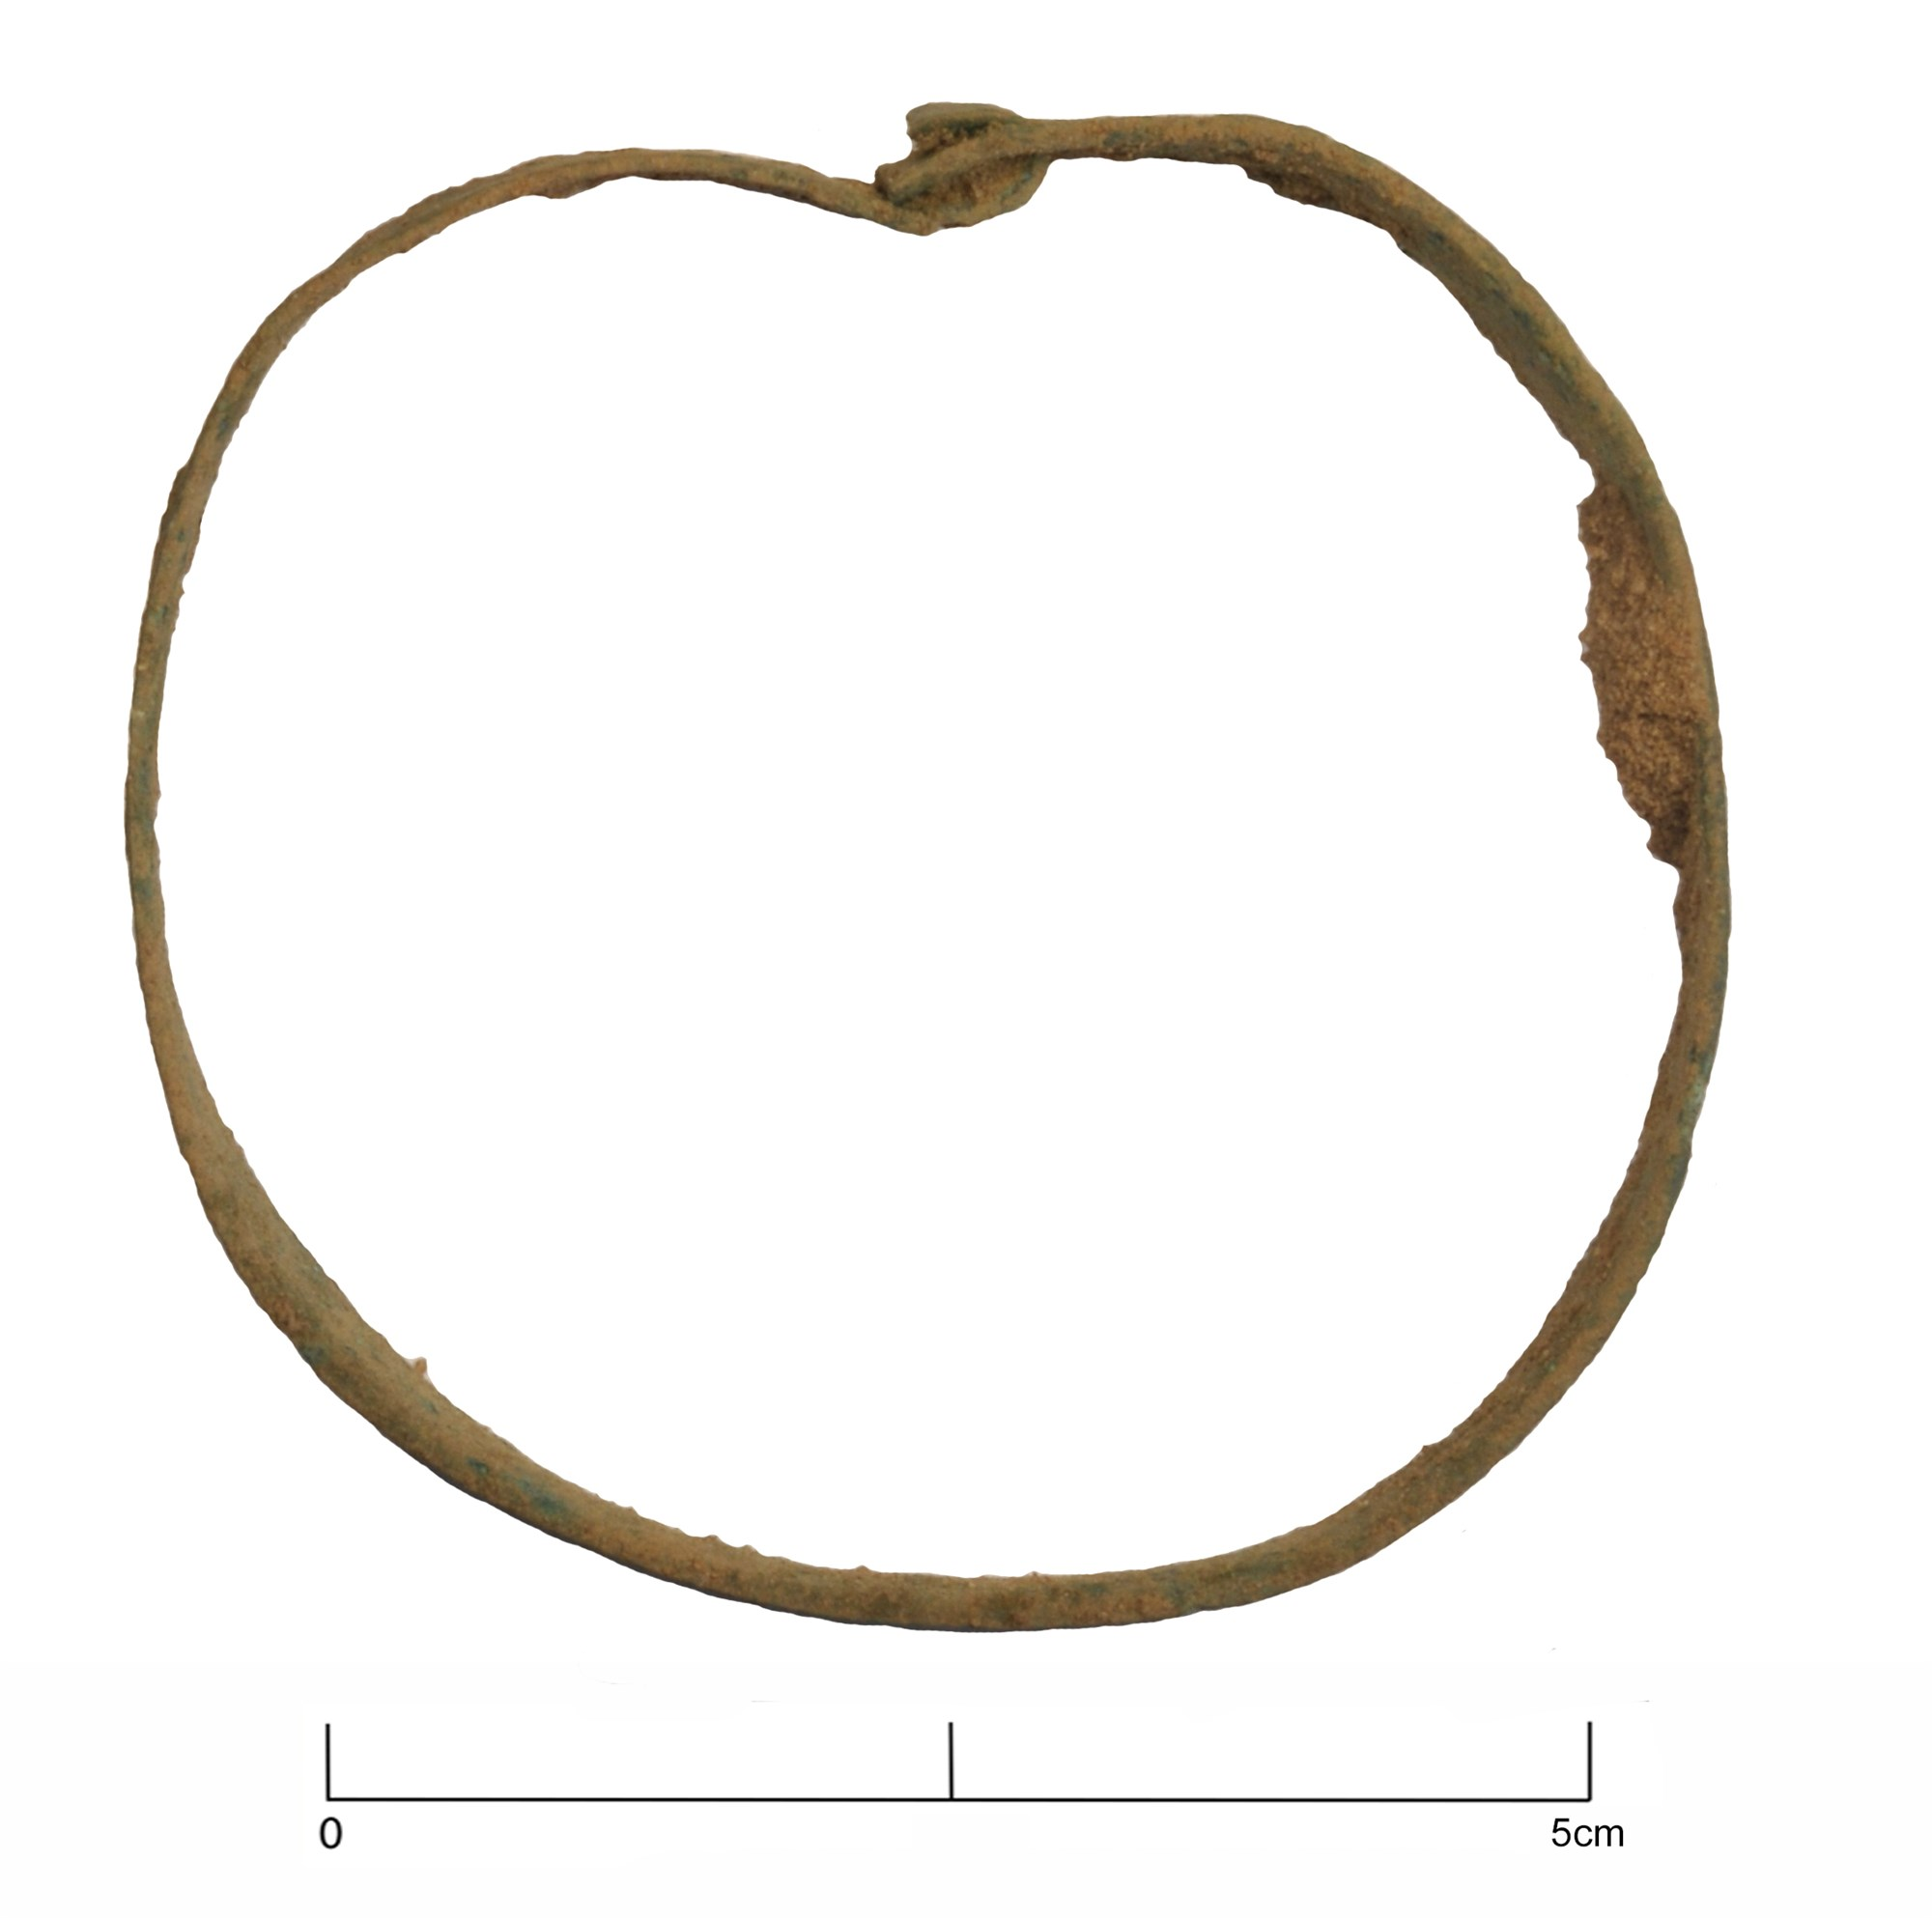 A late Roman copper alloy bracelet from Brightwell, Suffolk